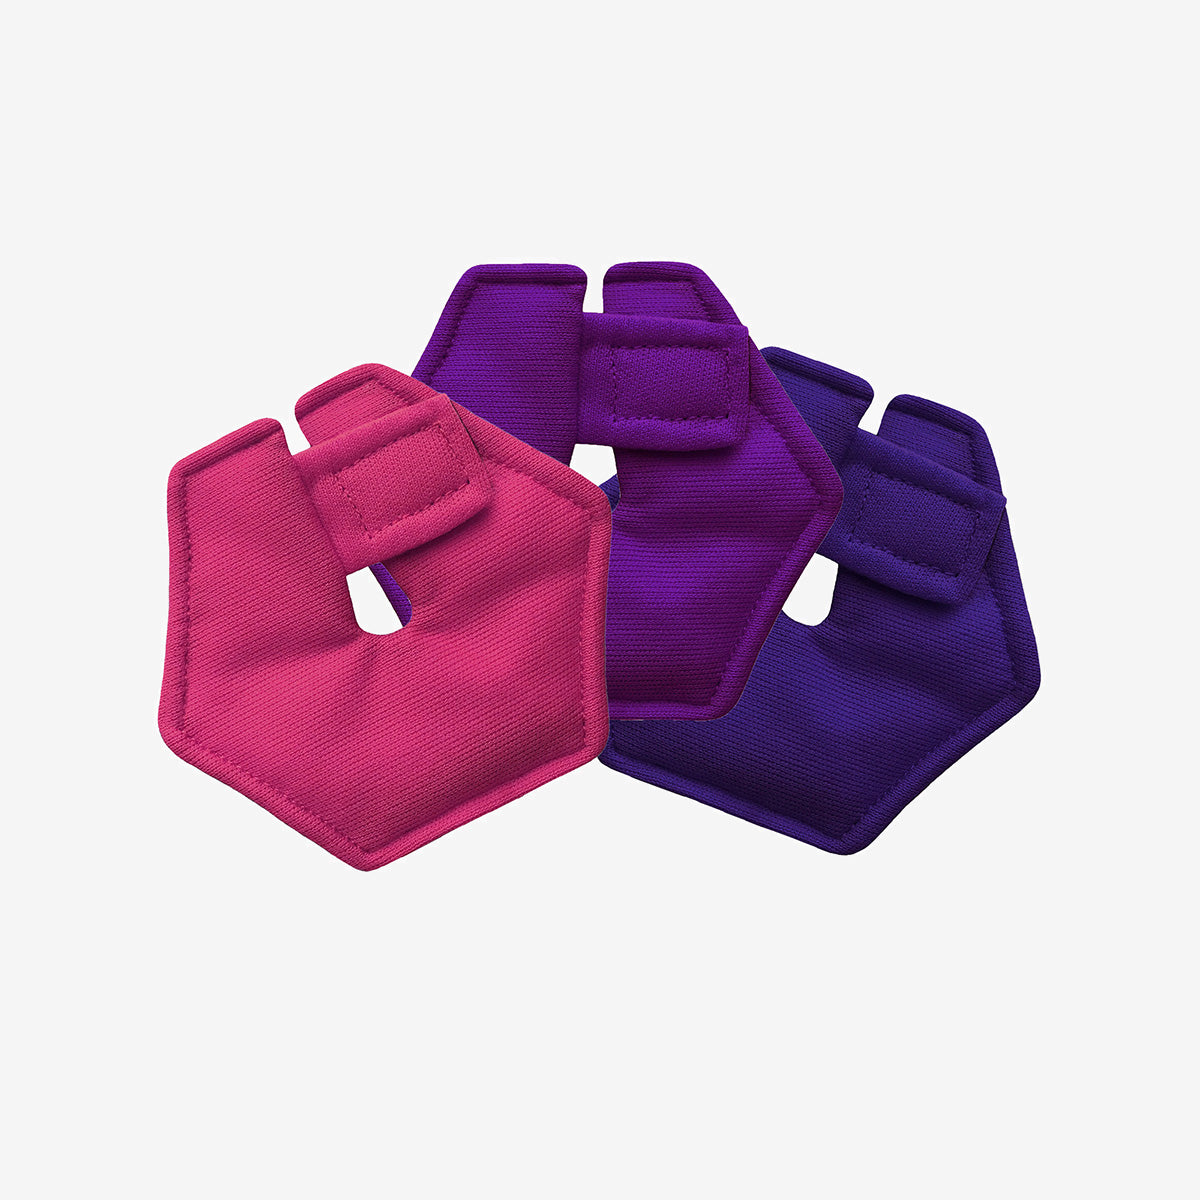 Pack of 3 hexagonal G-tube pads in purple, pink and plum colors